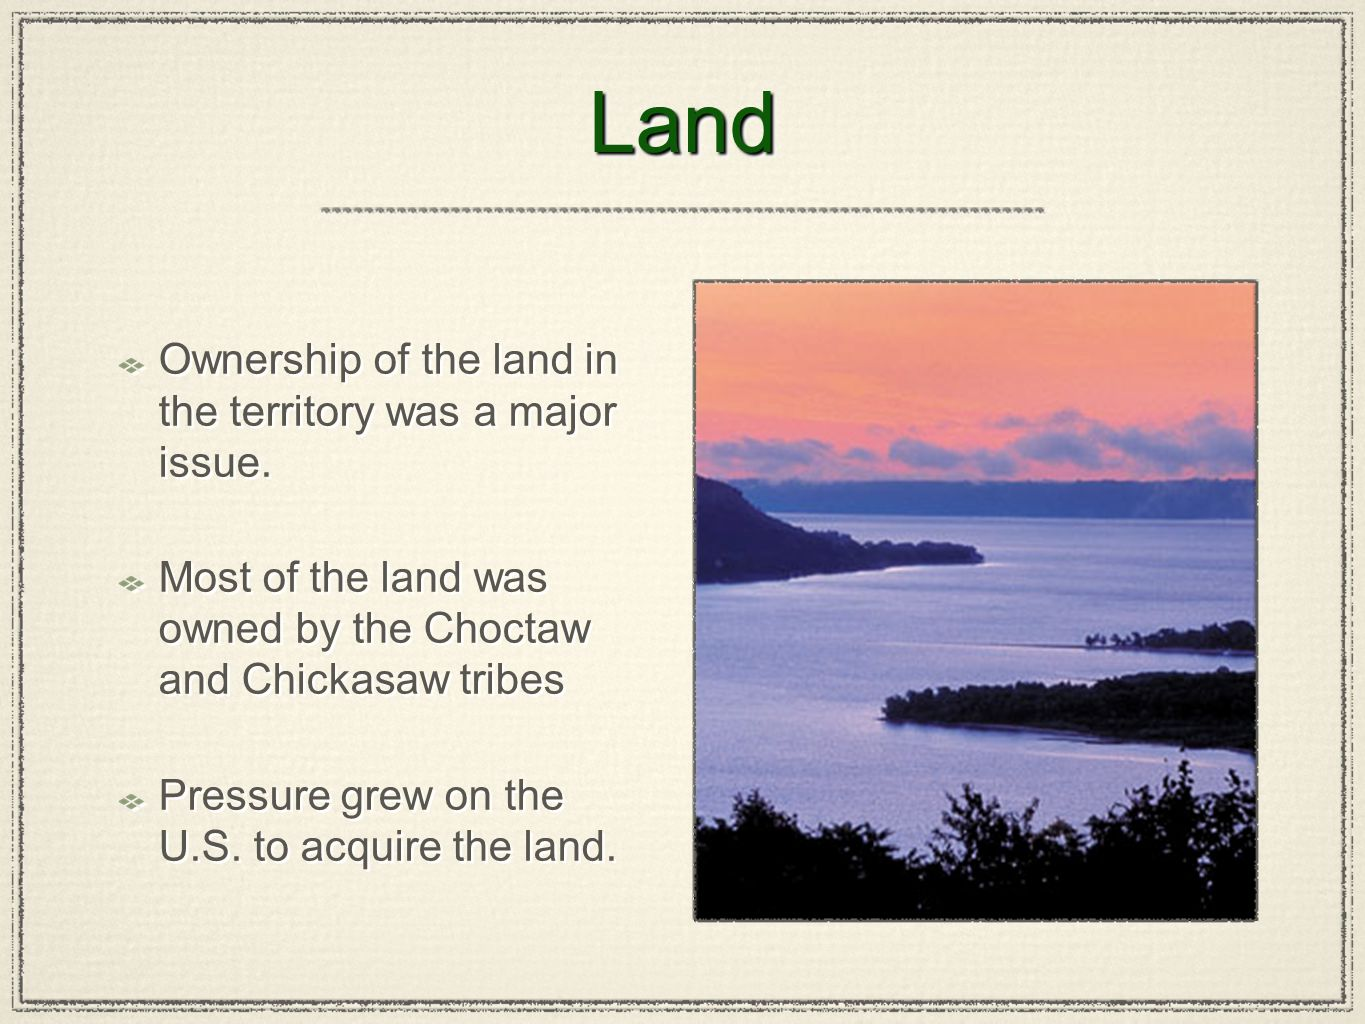 Land Ownership of the land in the territory was a major issue.